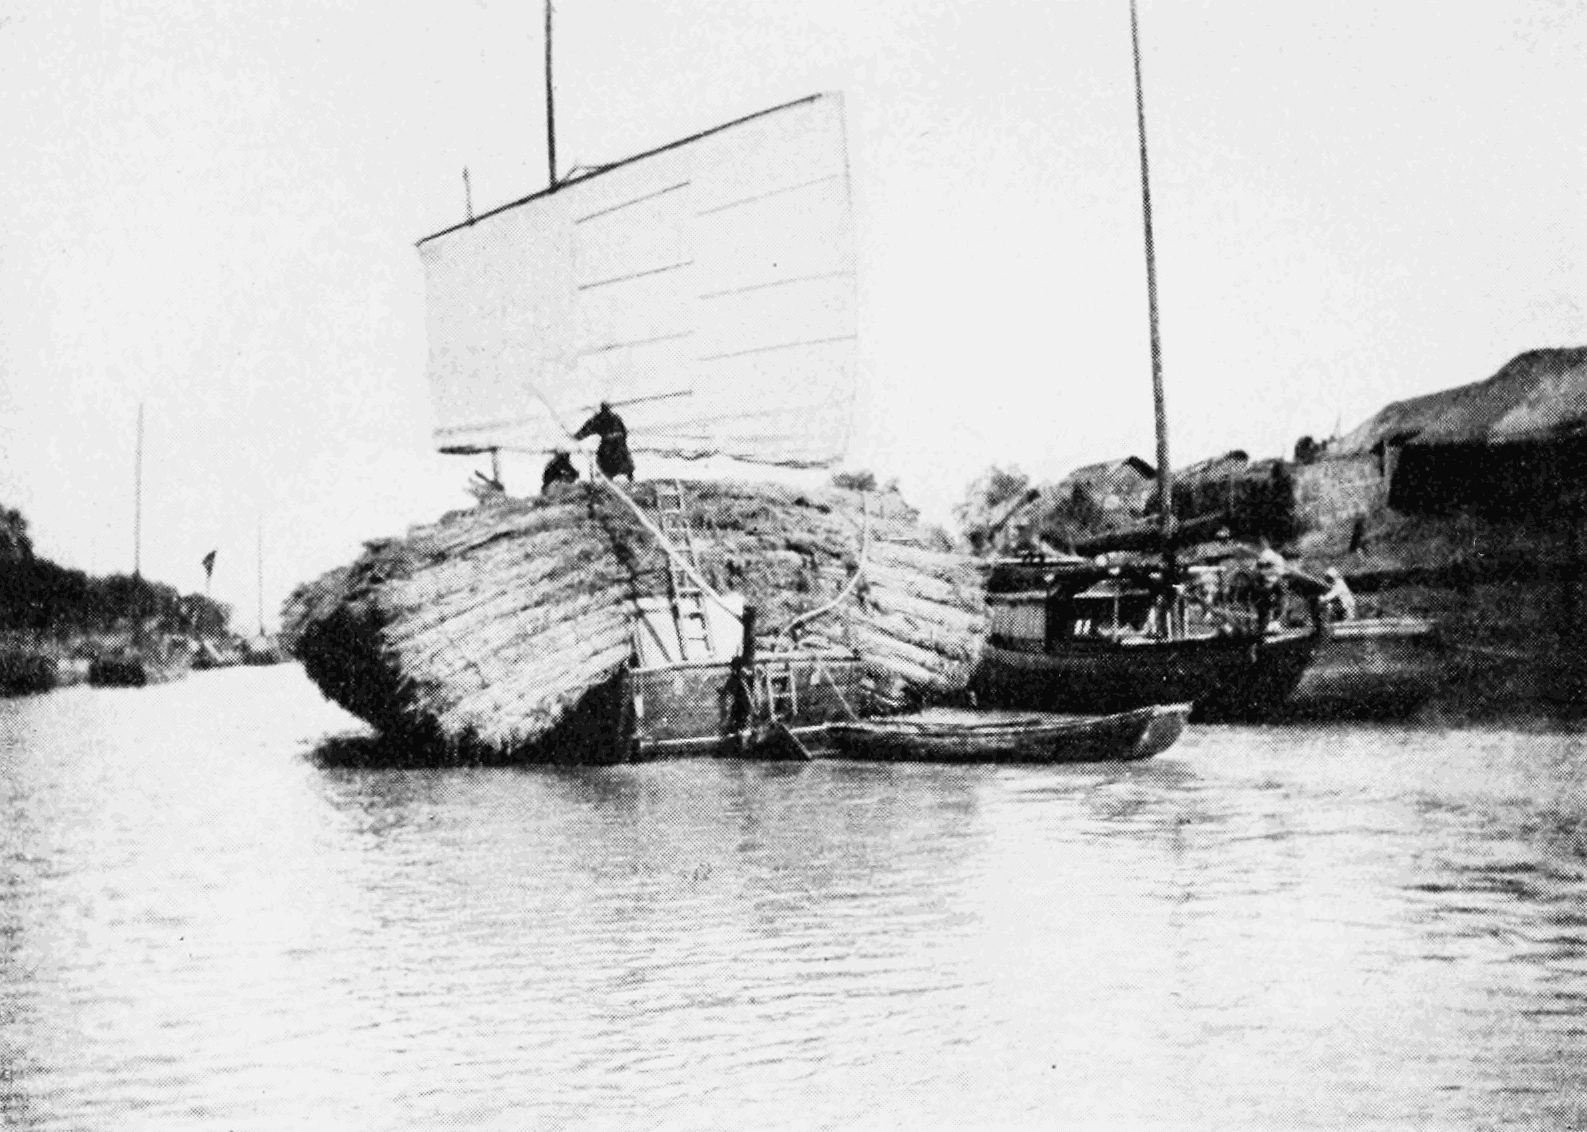 PSM V67 D522 Junk on the grand canal zhenjiang loaded with dry reed grass.png